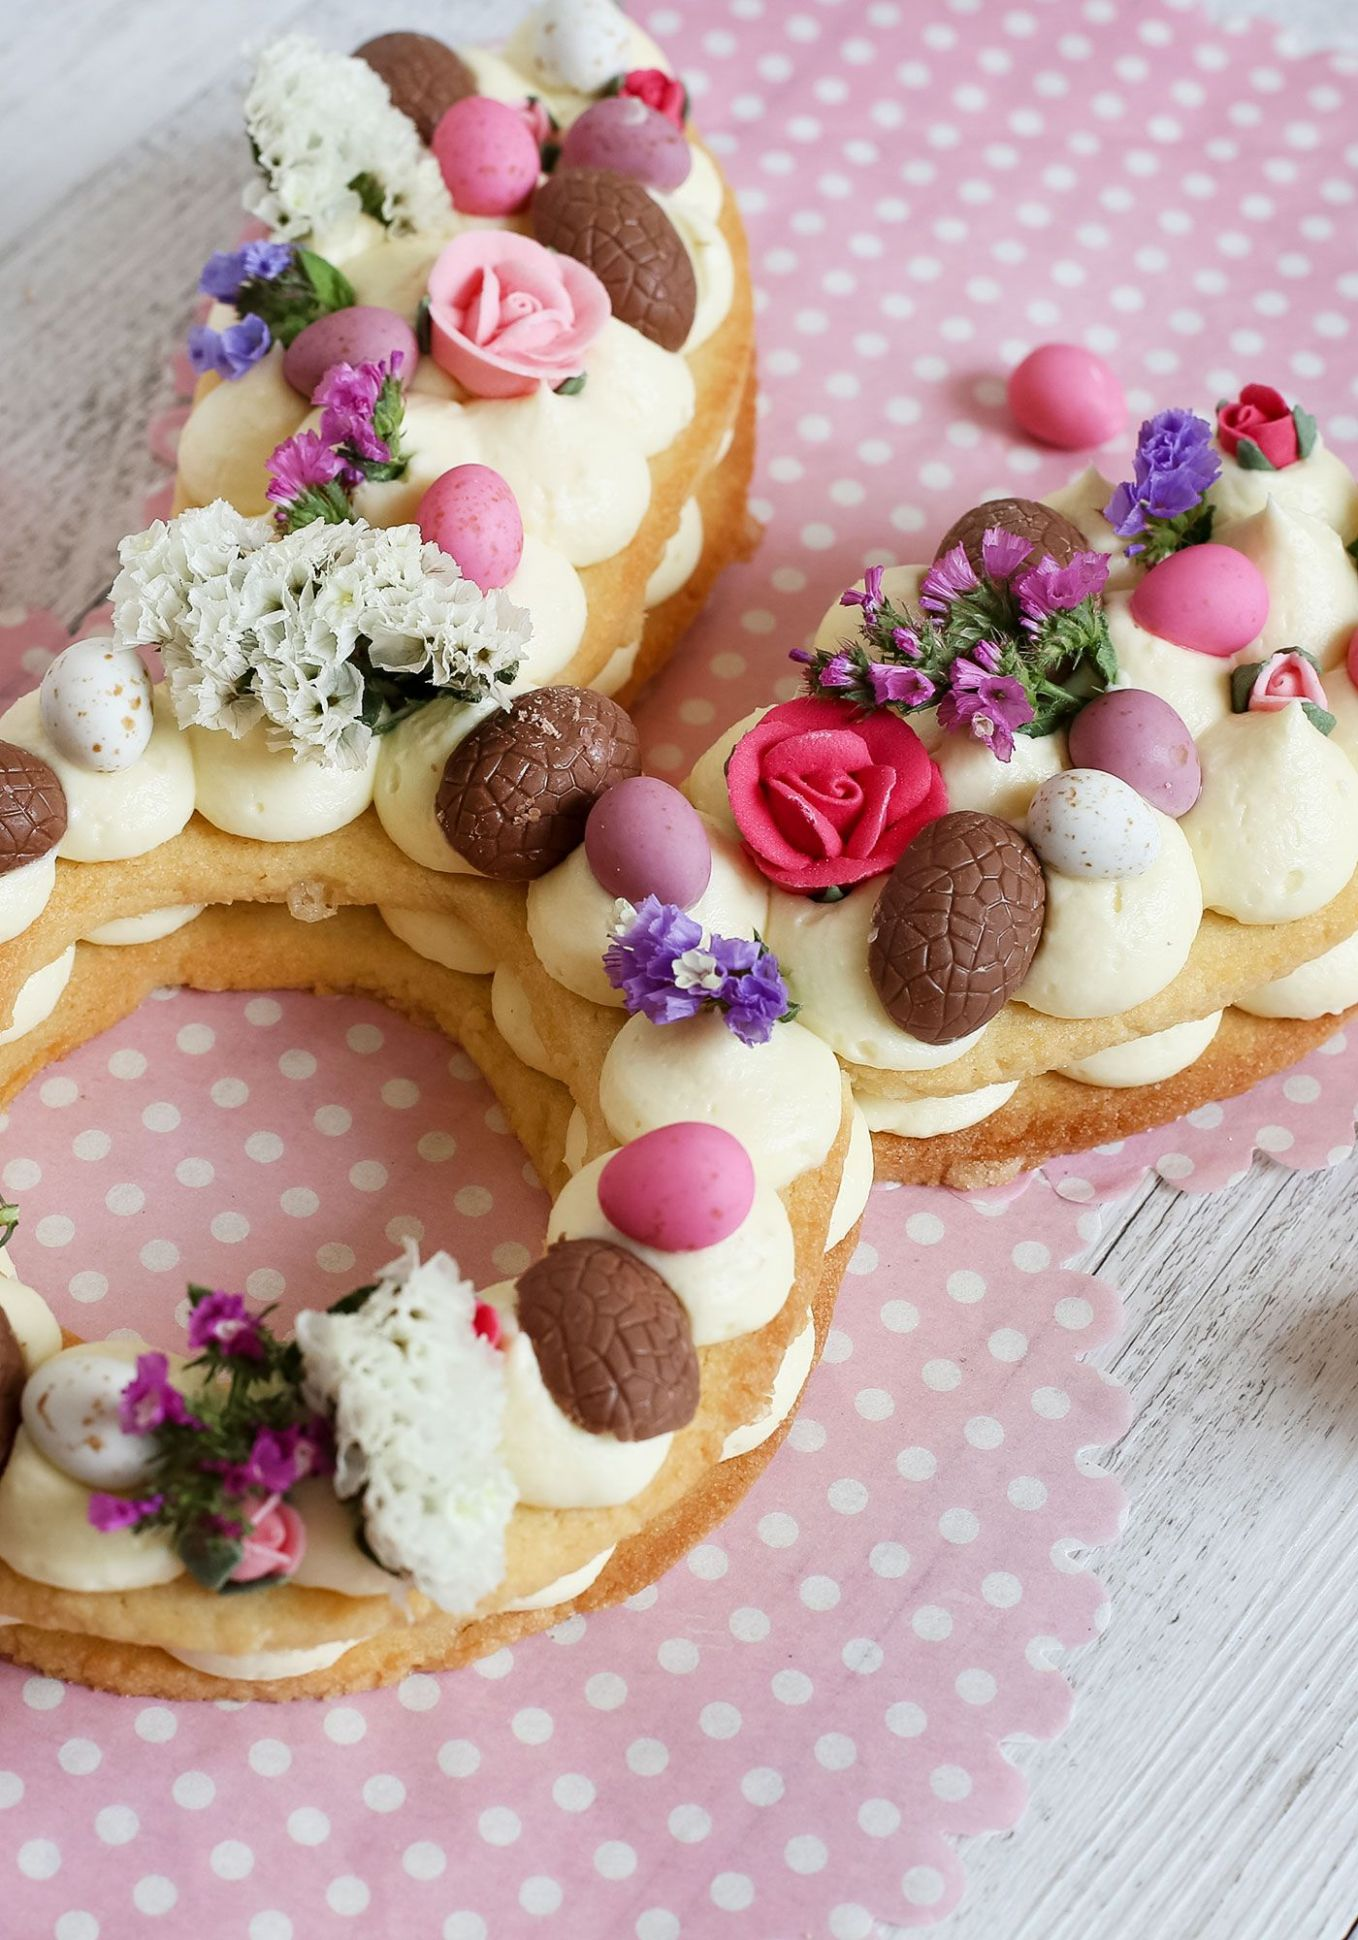 Easter Bunny Cream Tart - Dessert Recipes For Easter